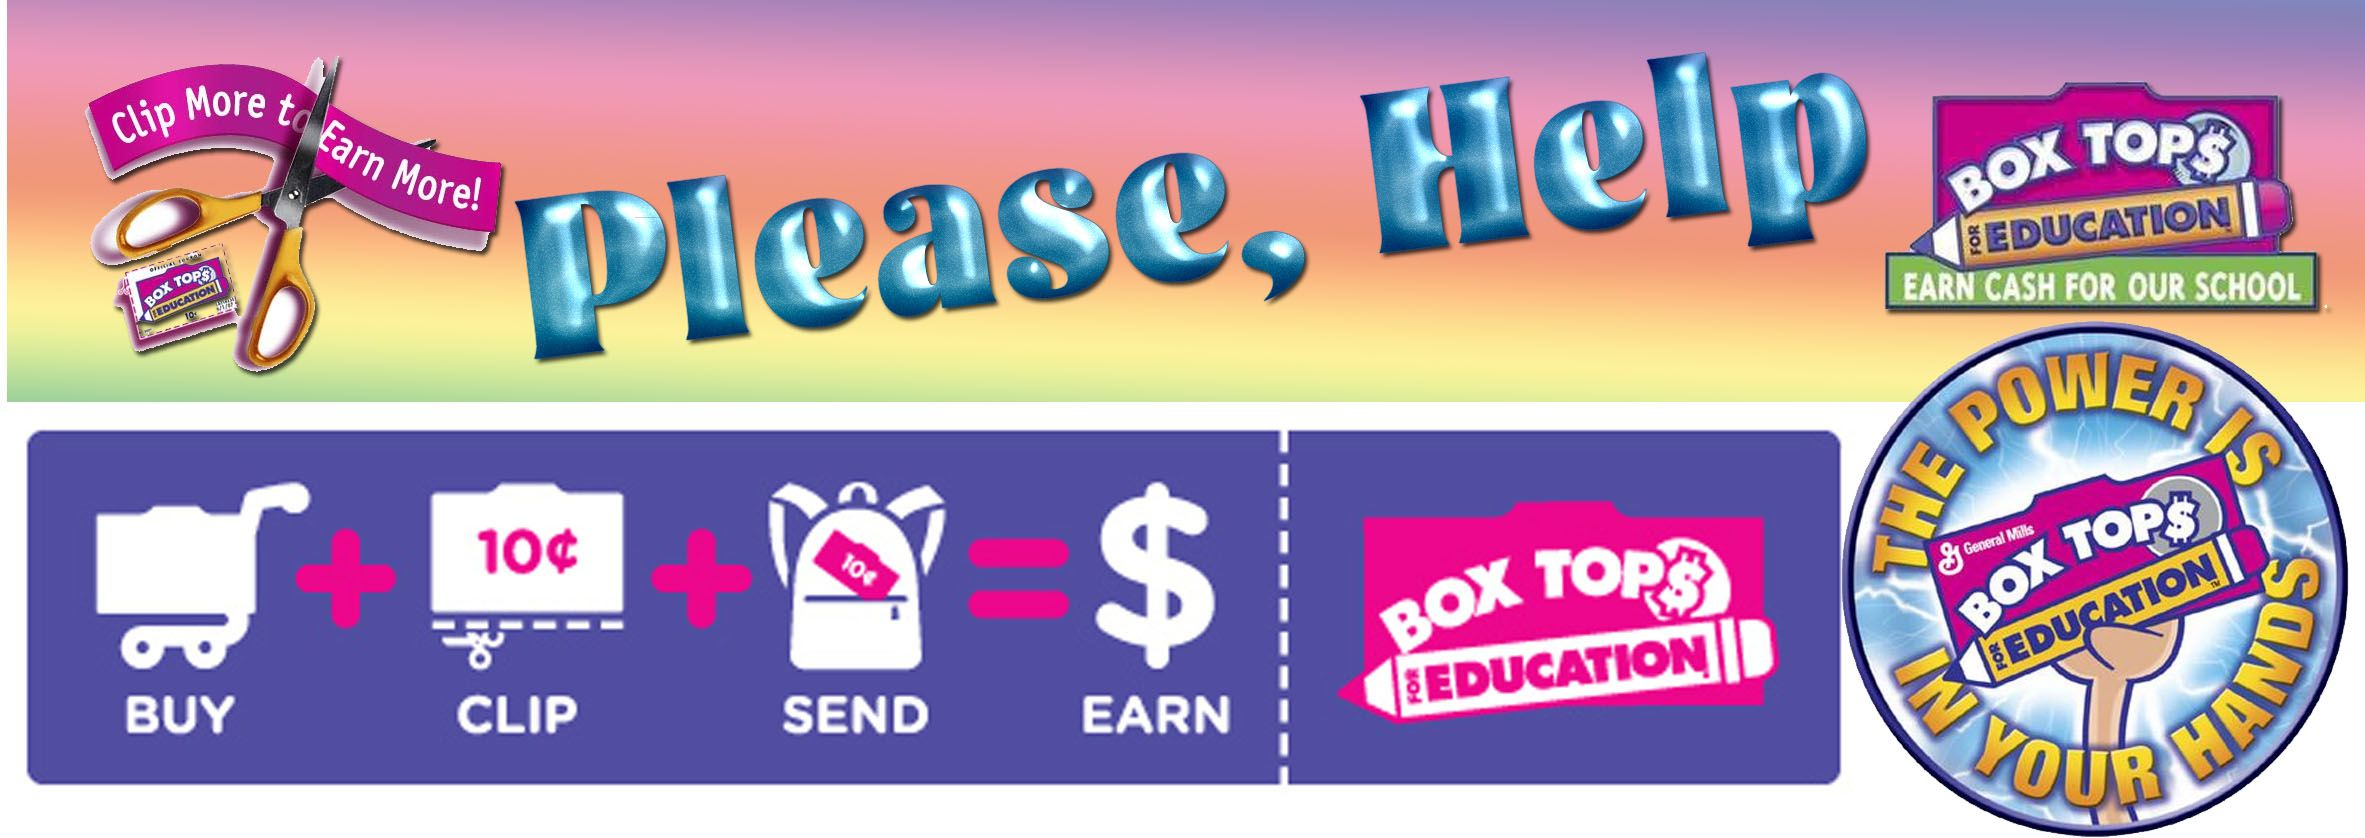 Click here for letter to parents about box tops